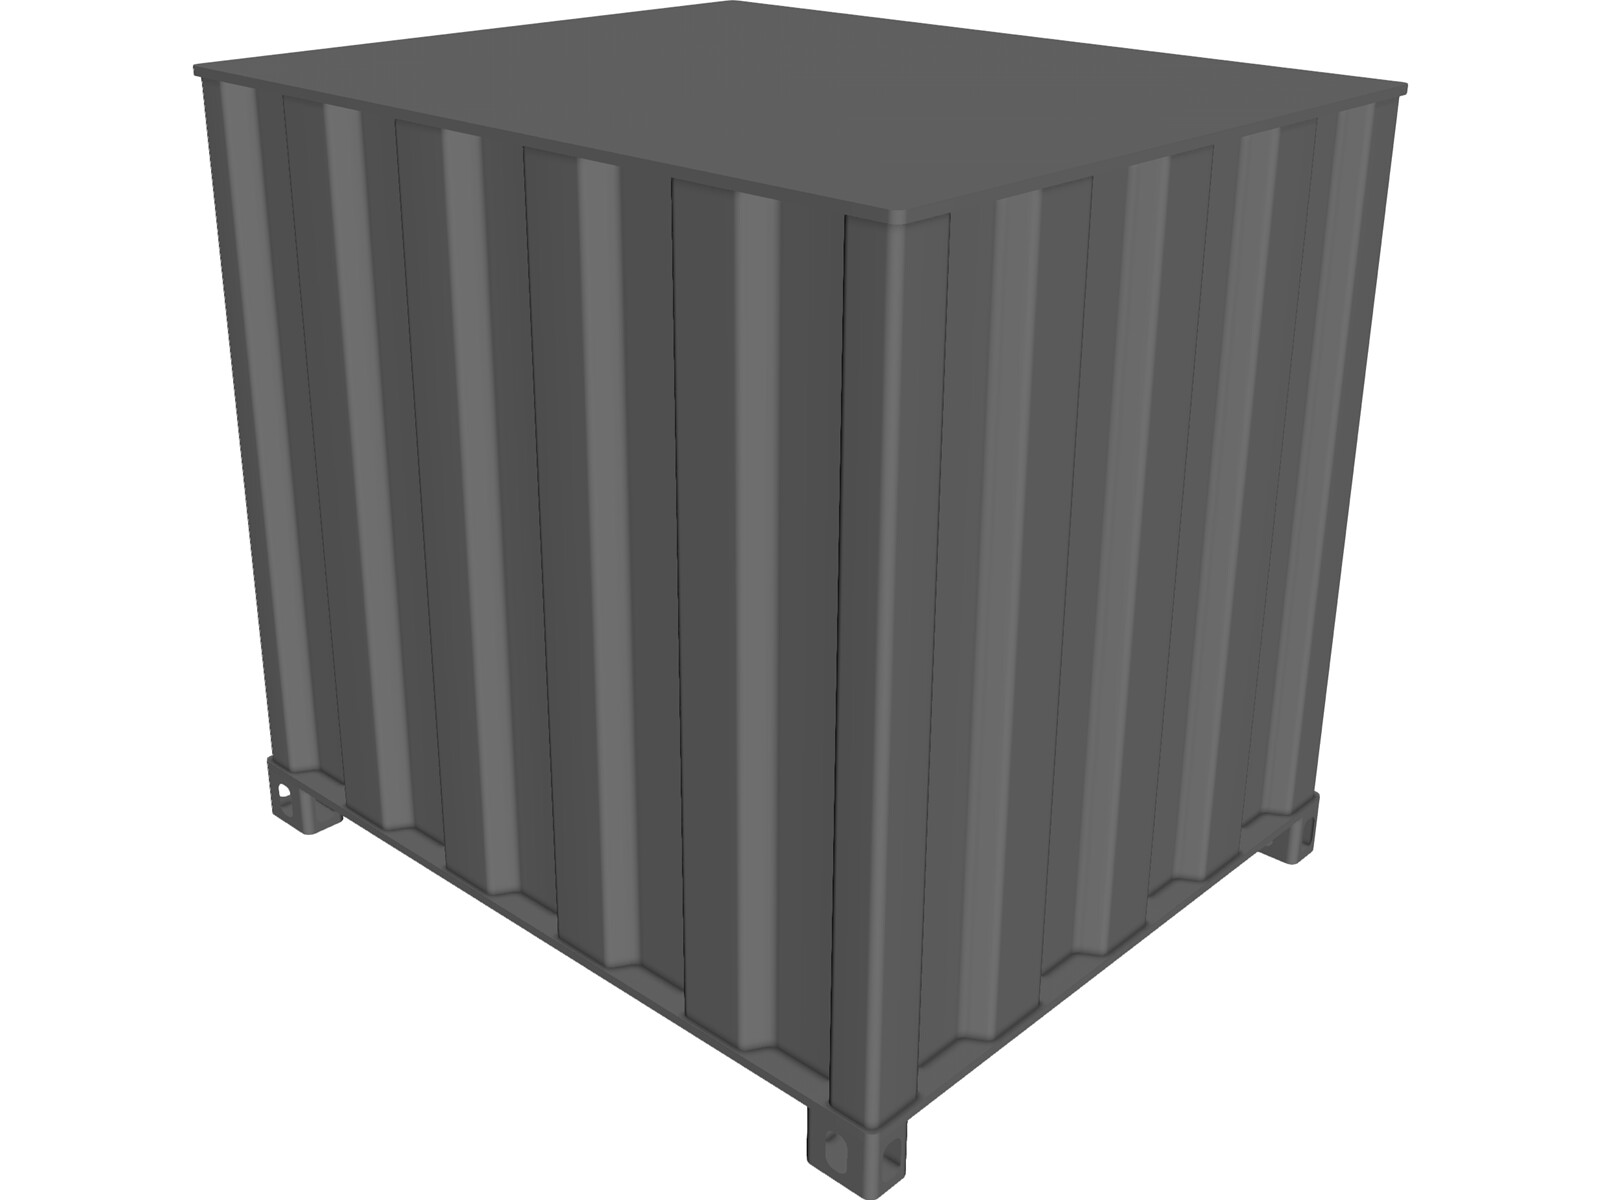 Shipping Cargo Square Container 48D CAD Model 48D CAD Browser Adorable Shipping Furniture Model